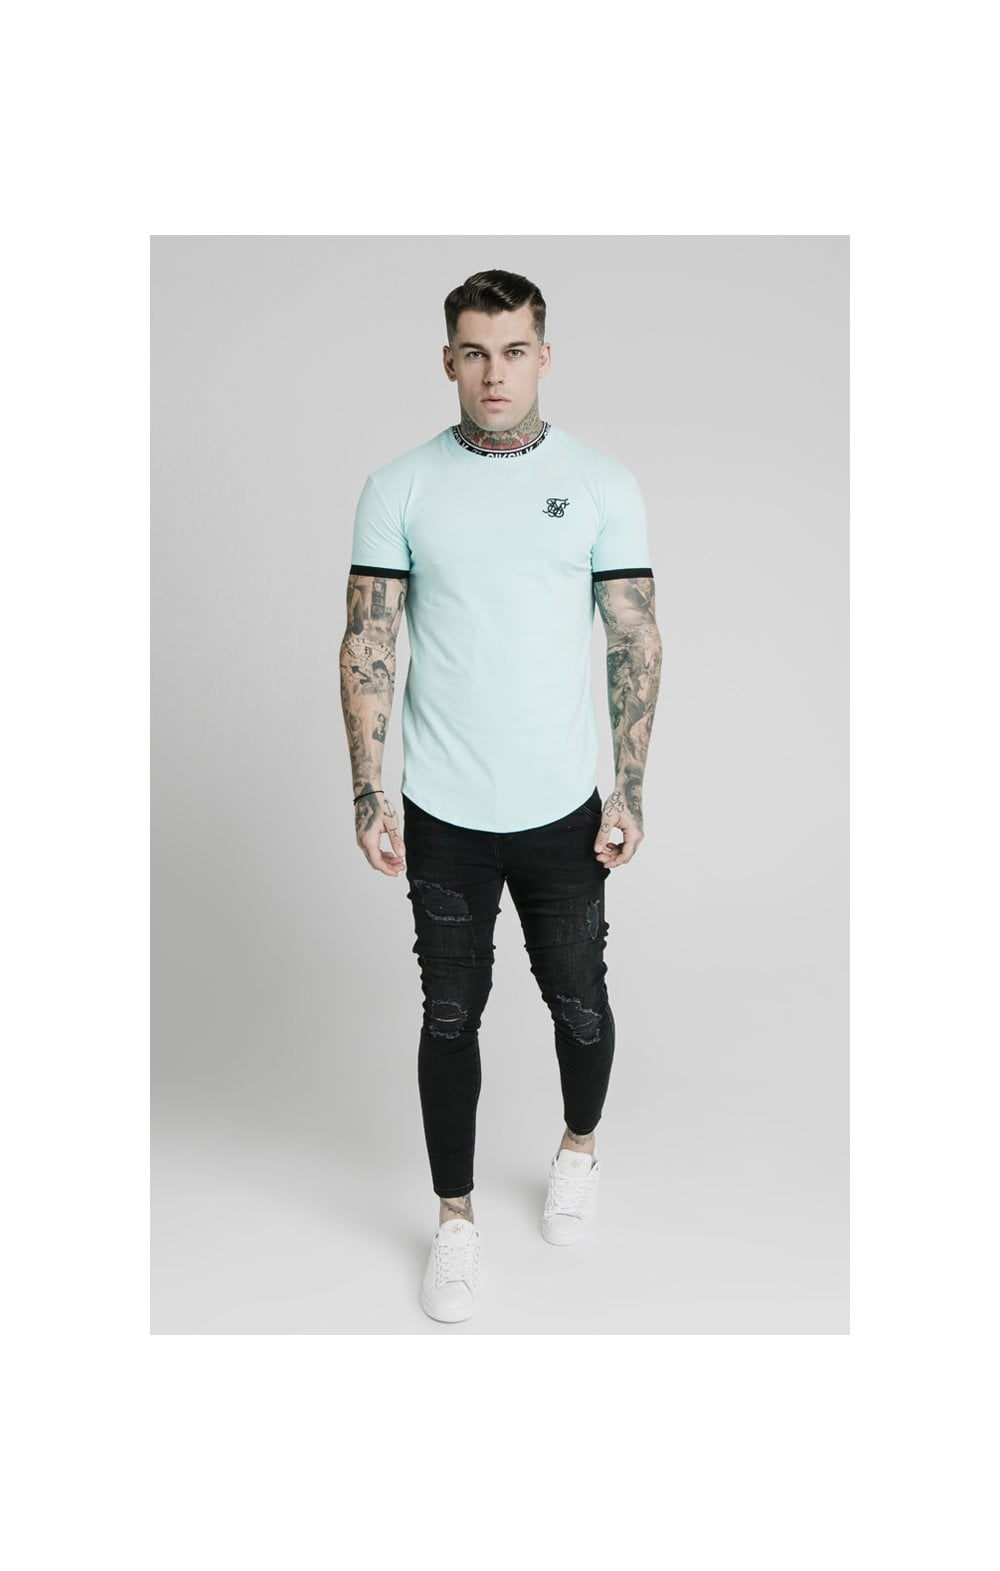 SikSilk S/S Inset Tape Collar Gym Tee - Teal (3)